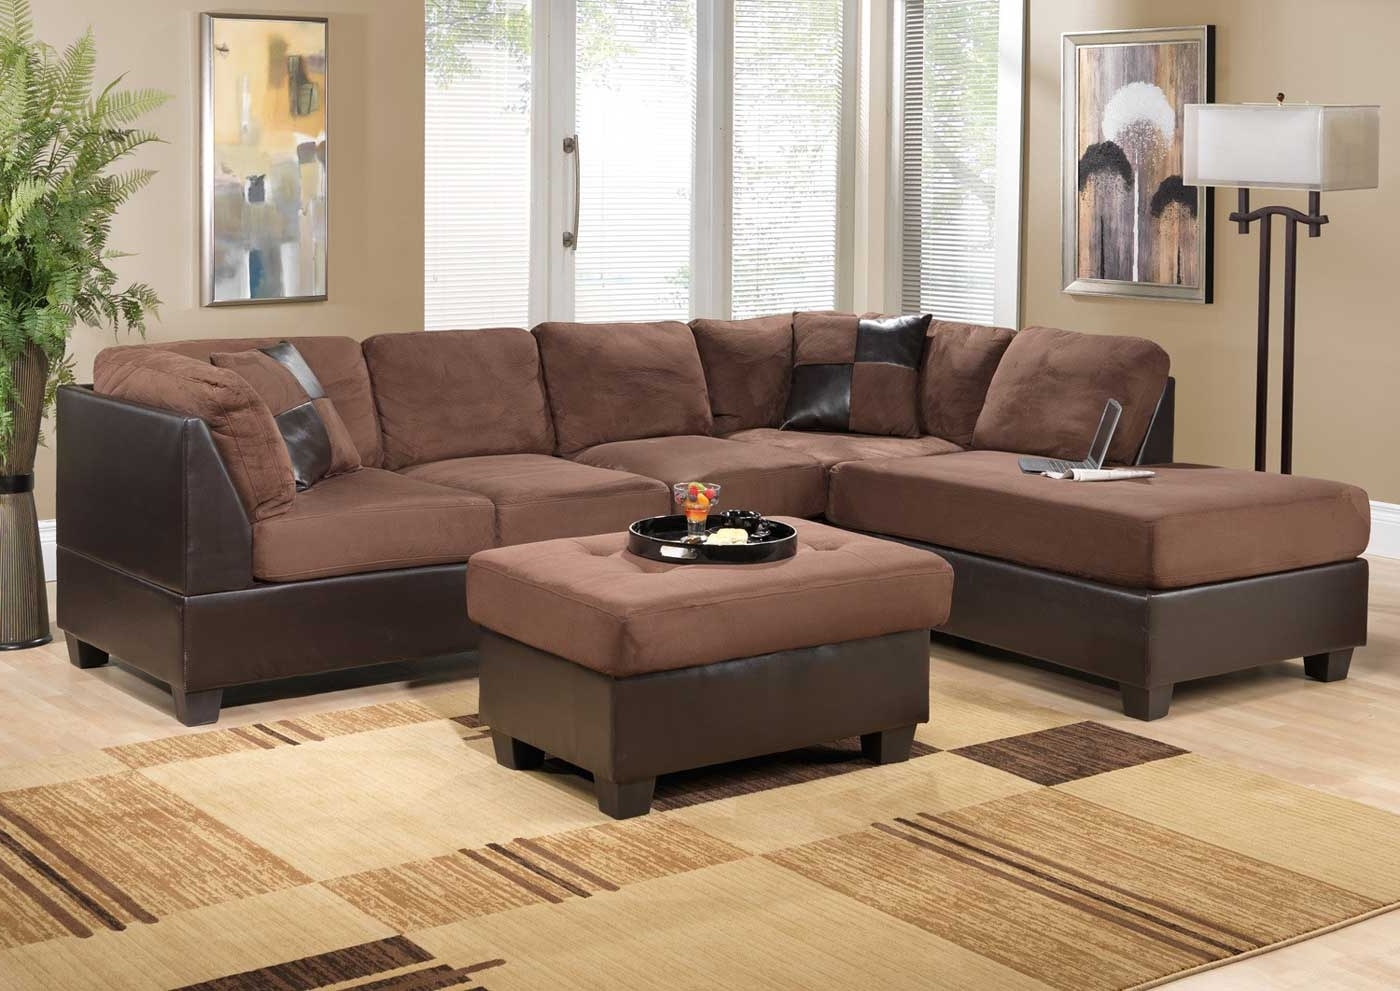 Furniture : Sectional Sofa Under 200 Corner Couch Tao Beach Regarding Well Known Vt Sectional Sofas (View 5 of 15)